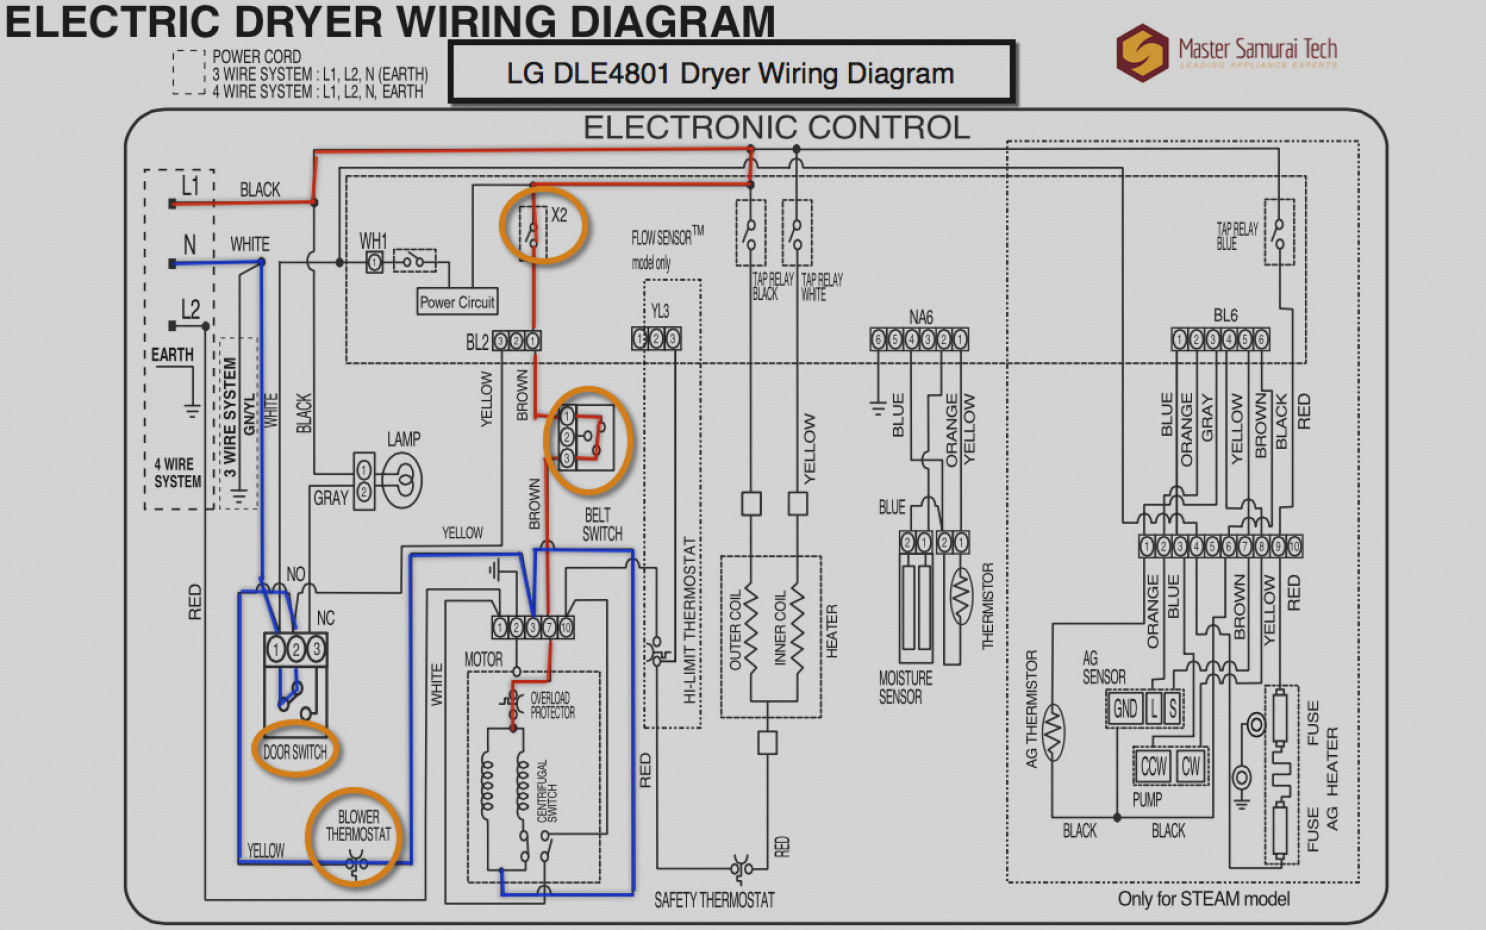 WRG-7265] Dishwasher Pump Motor Wiring Diagram